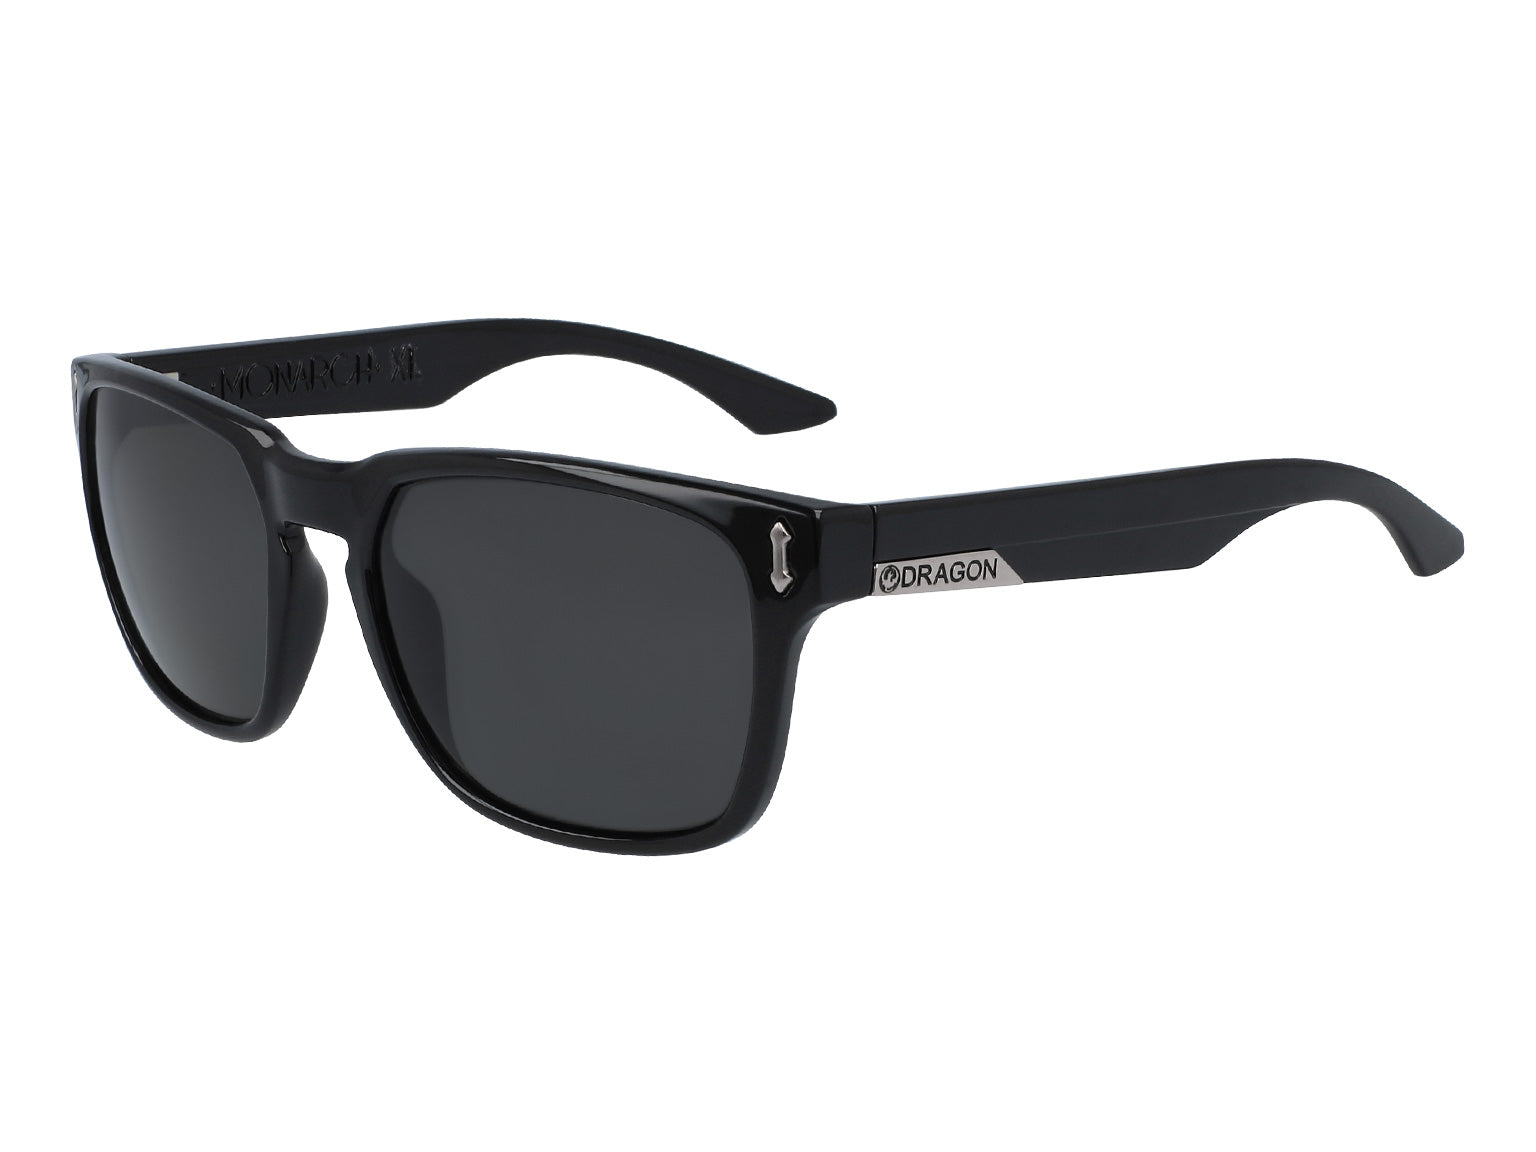 MONARCH XL - Jet with Polarized Lumalens Smoke Lens